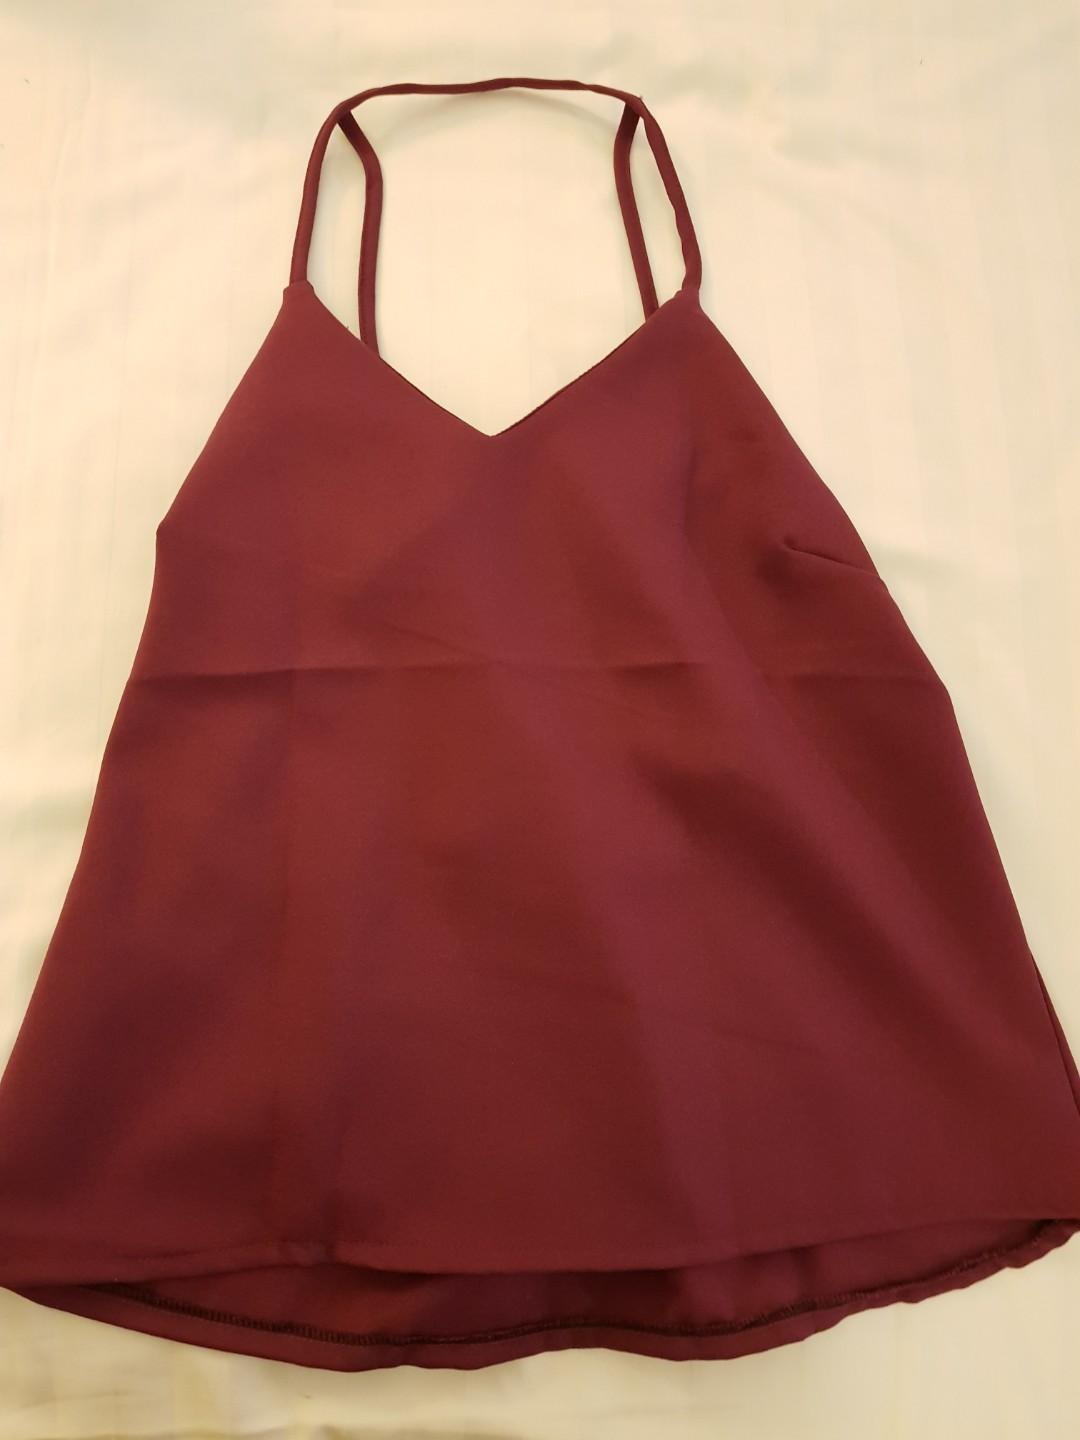 BNWT DIPPED BACK SATIN CHAMPAGNE RED SILK TOP